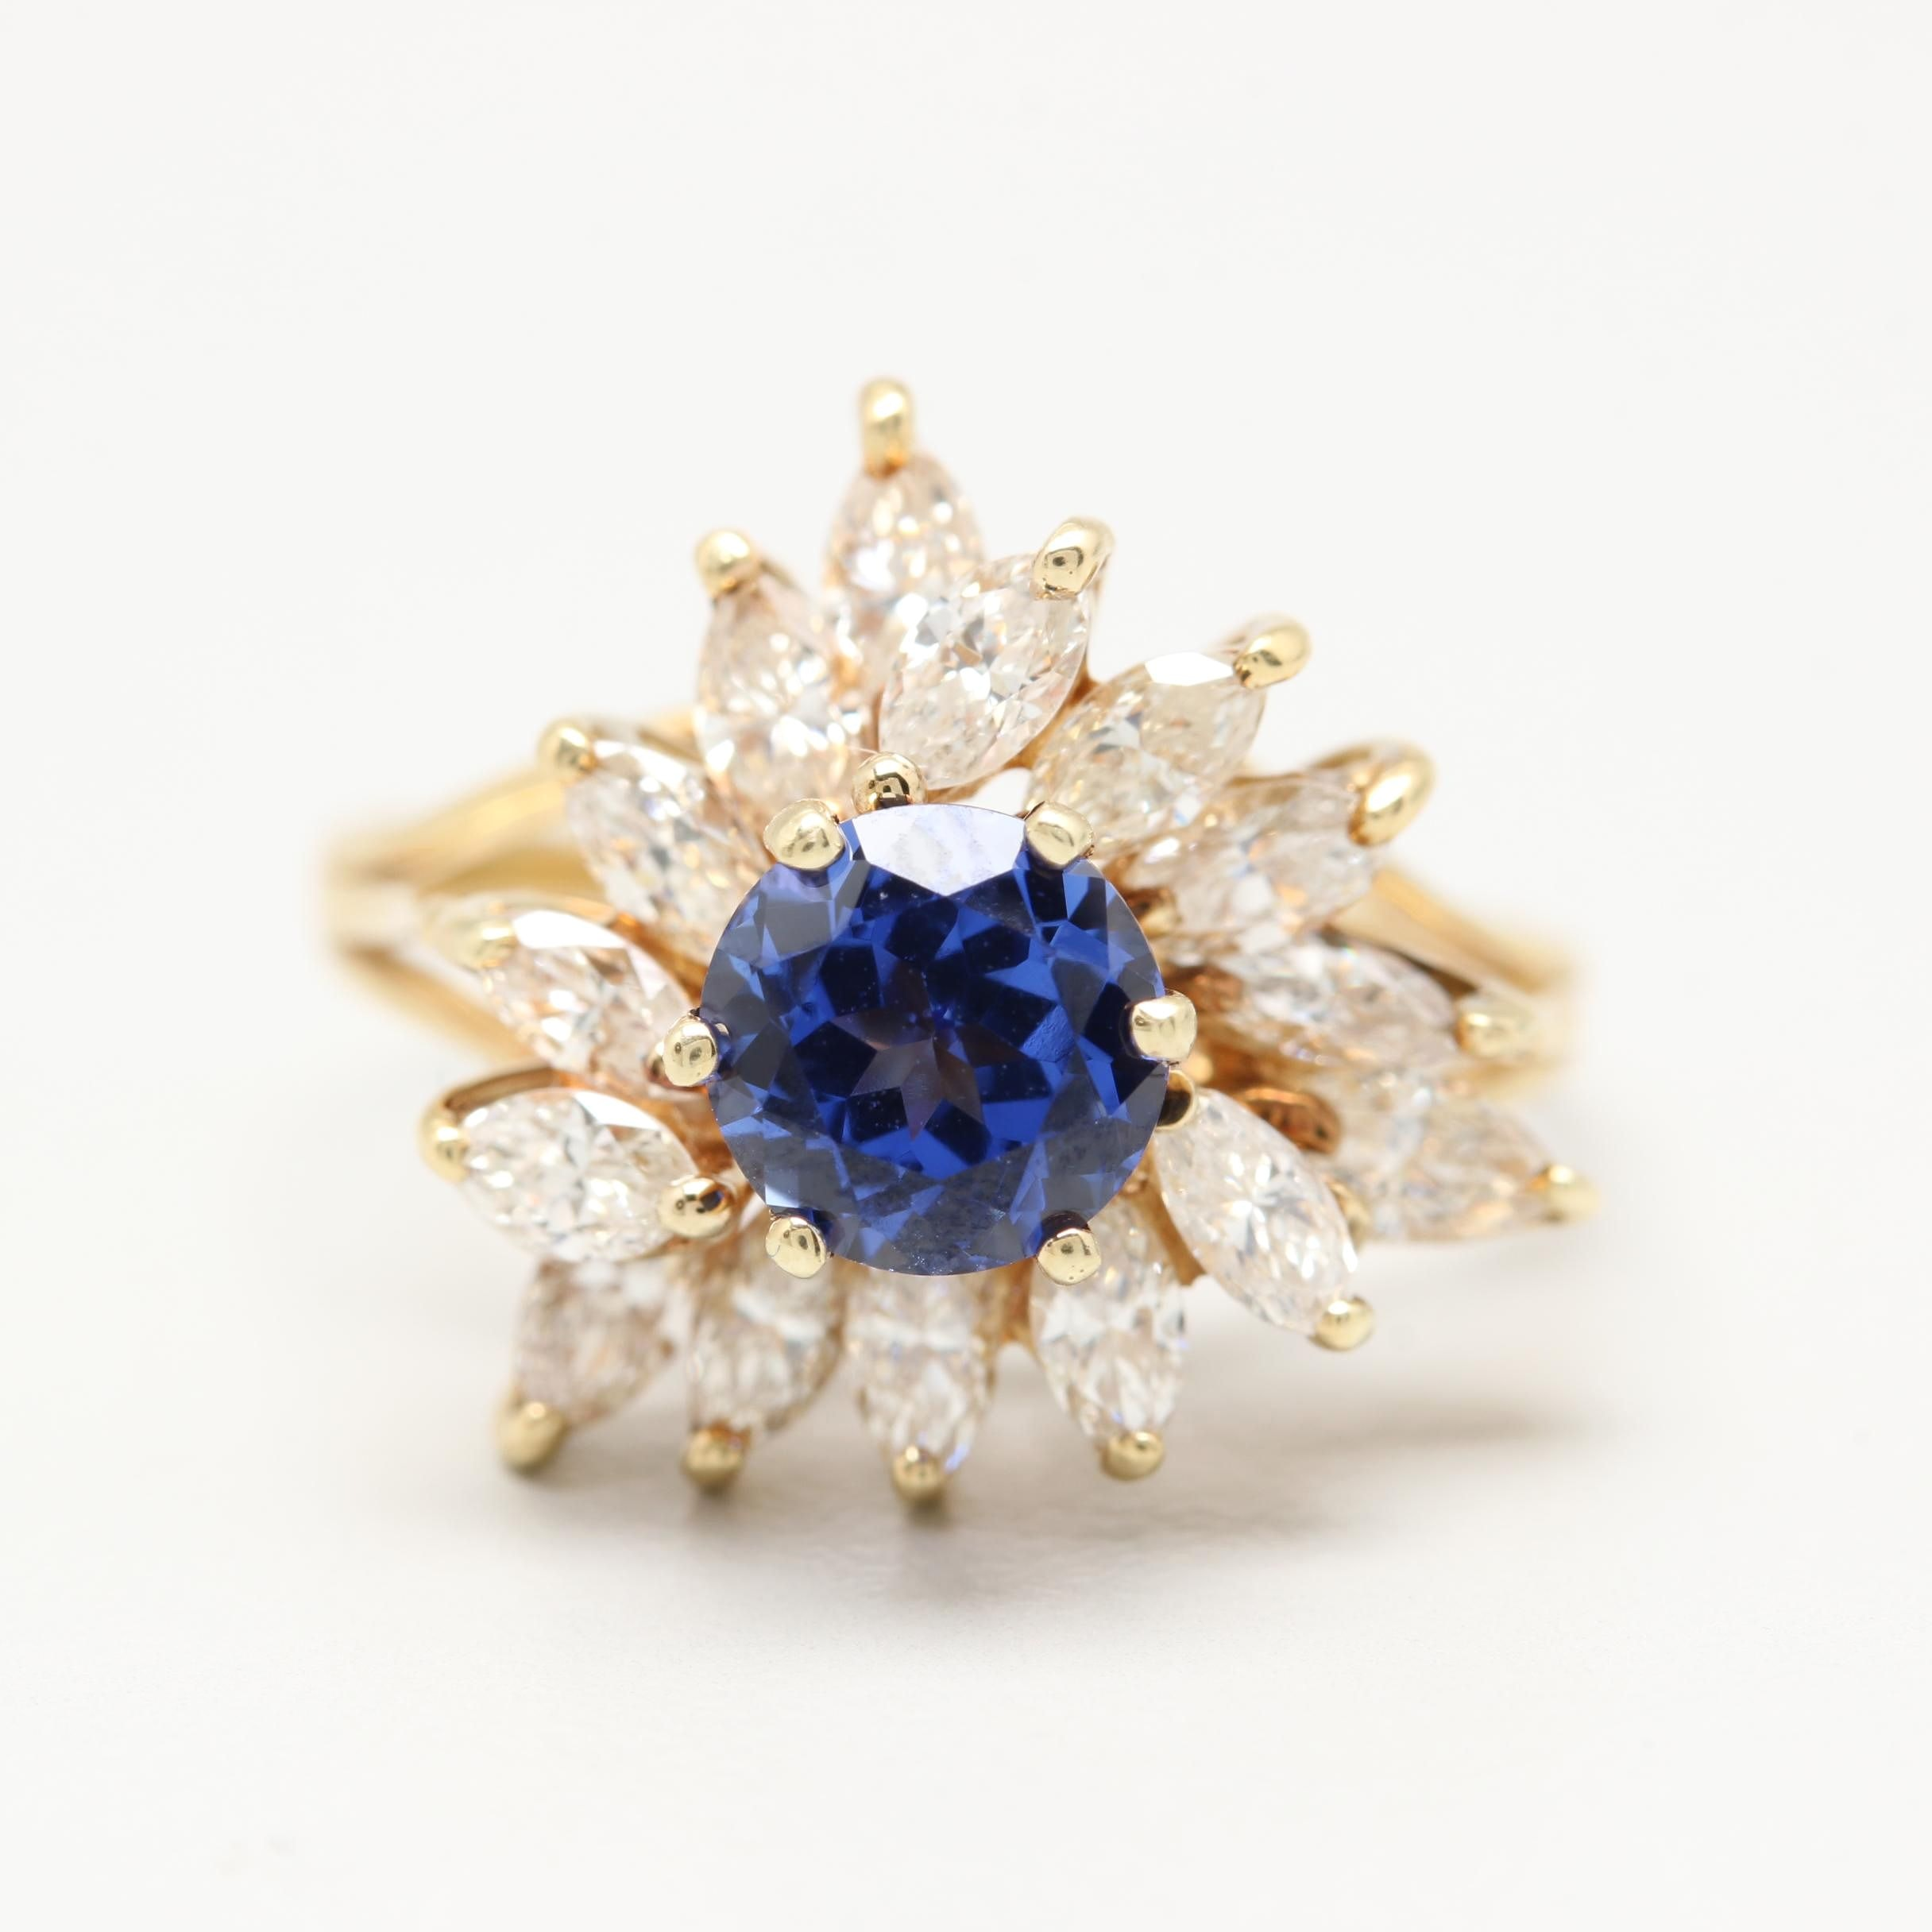 18K Yellow Gold Synthetic Sapphire and 1.17 CTW Diamond Ring